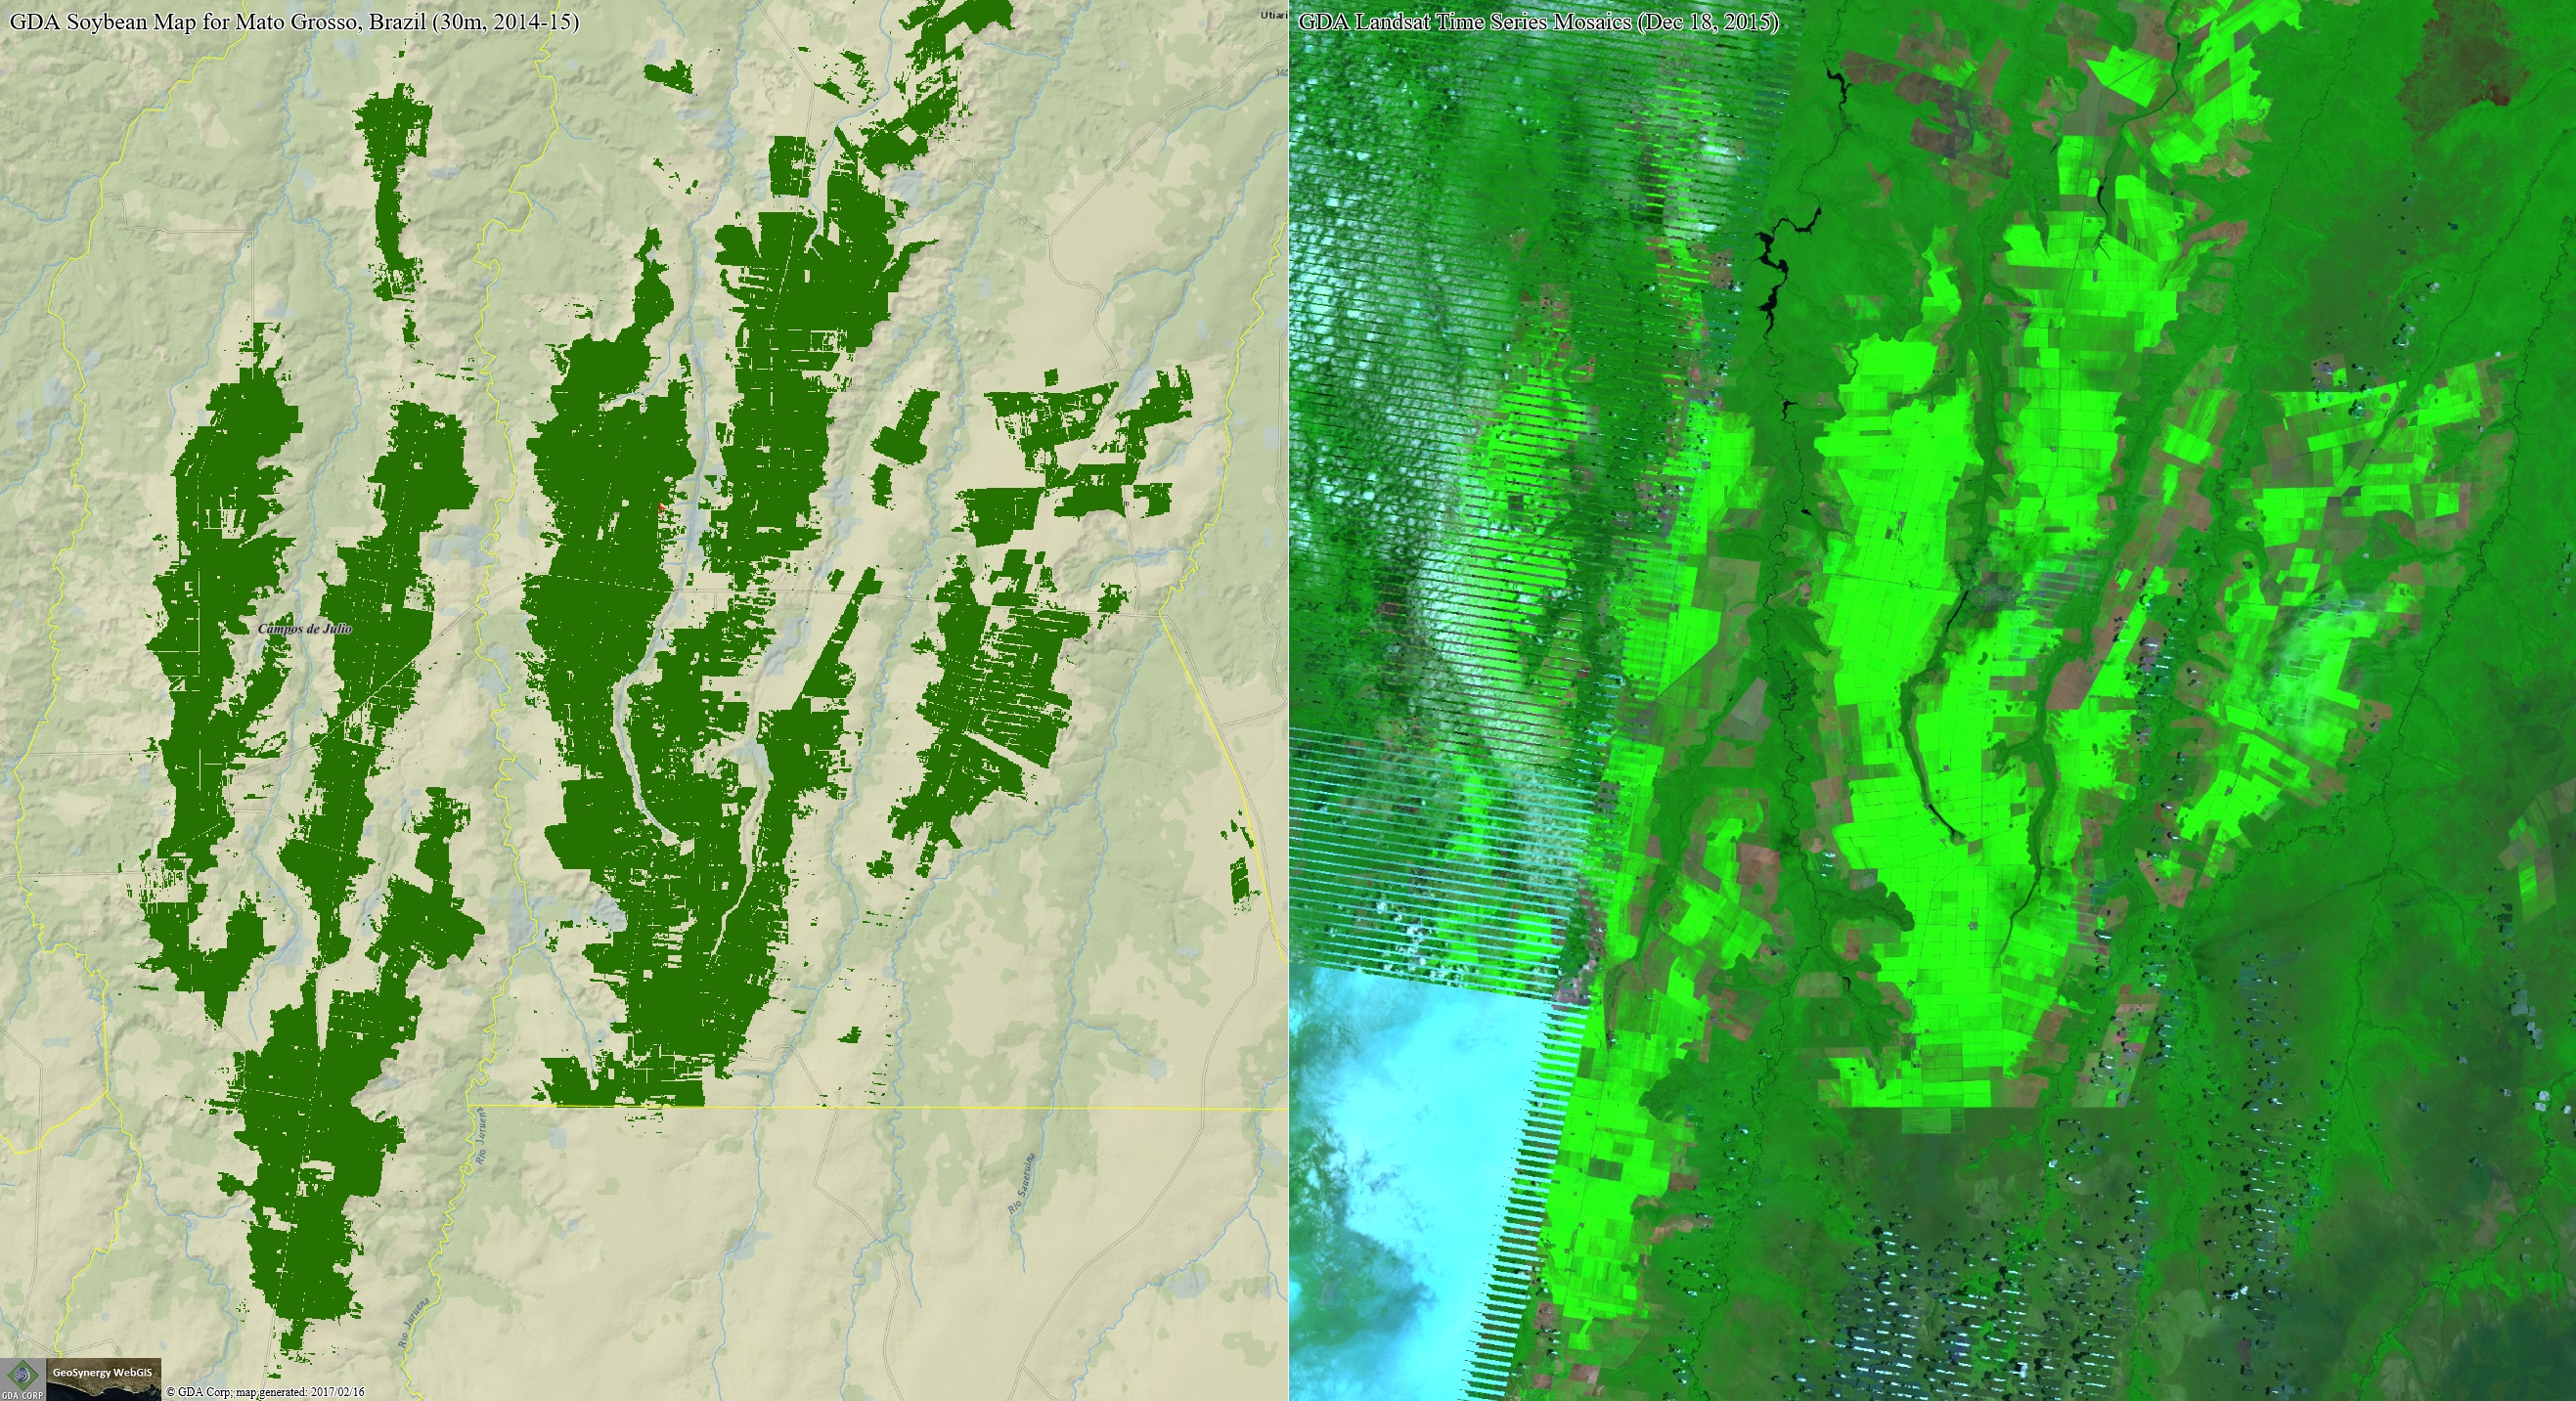 GDA soybean map for Brazil compared to the source Landsat mosaic.